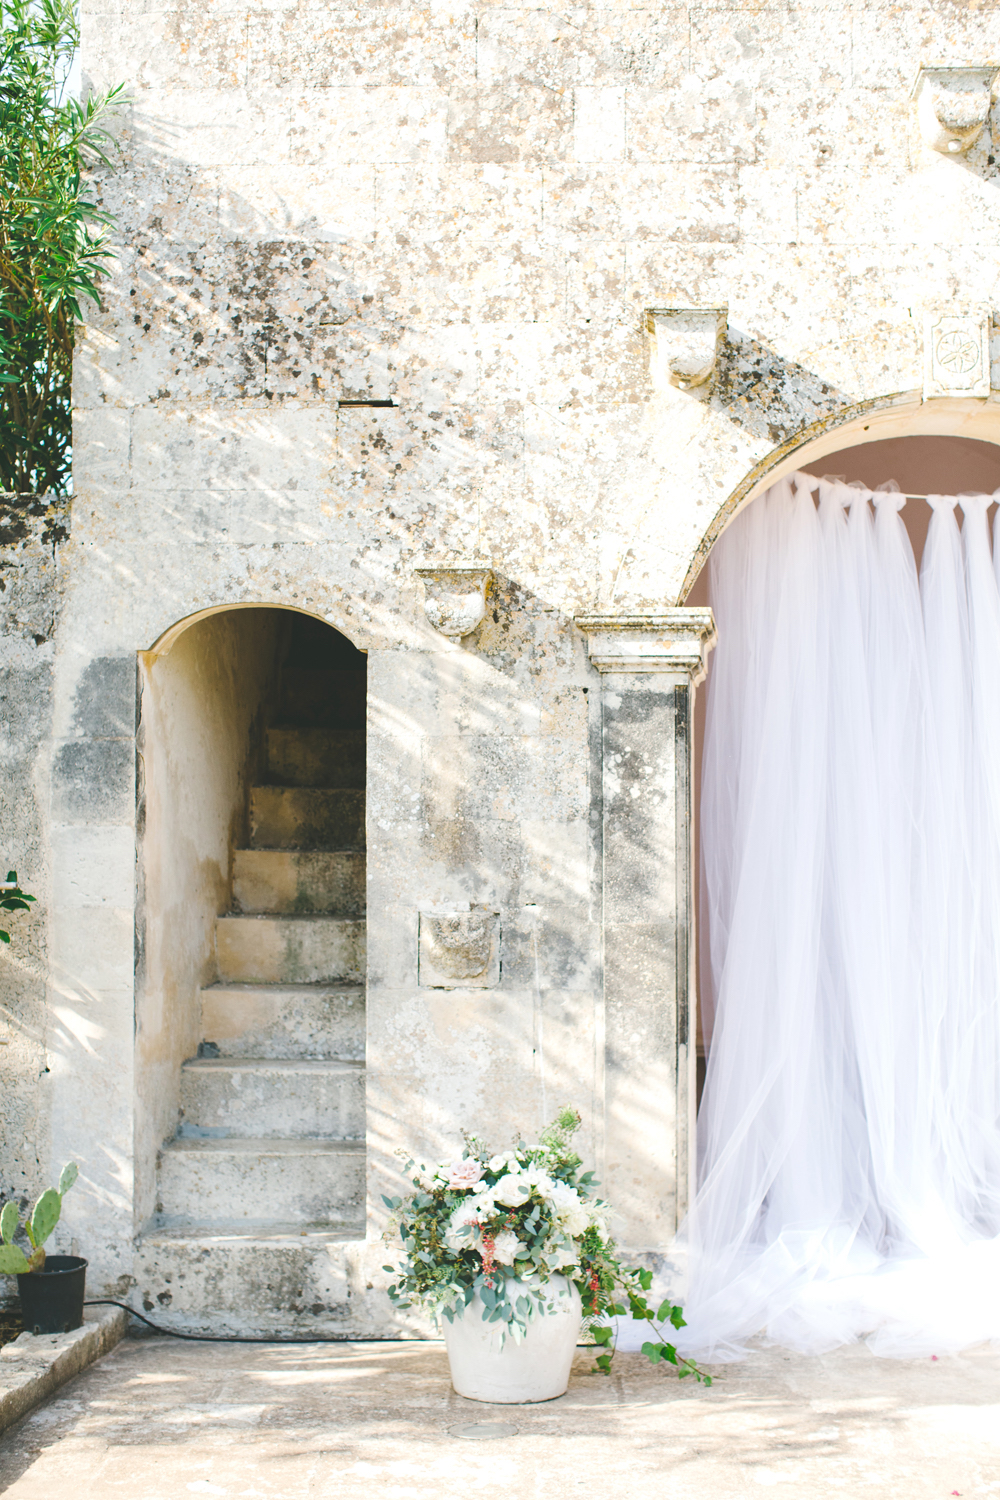 Les Amis Photo_Destination Wedding Photographer_Wedding in Puglia_BARMIC_15_105.jpg